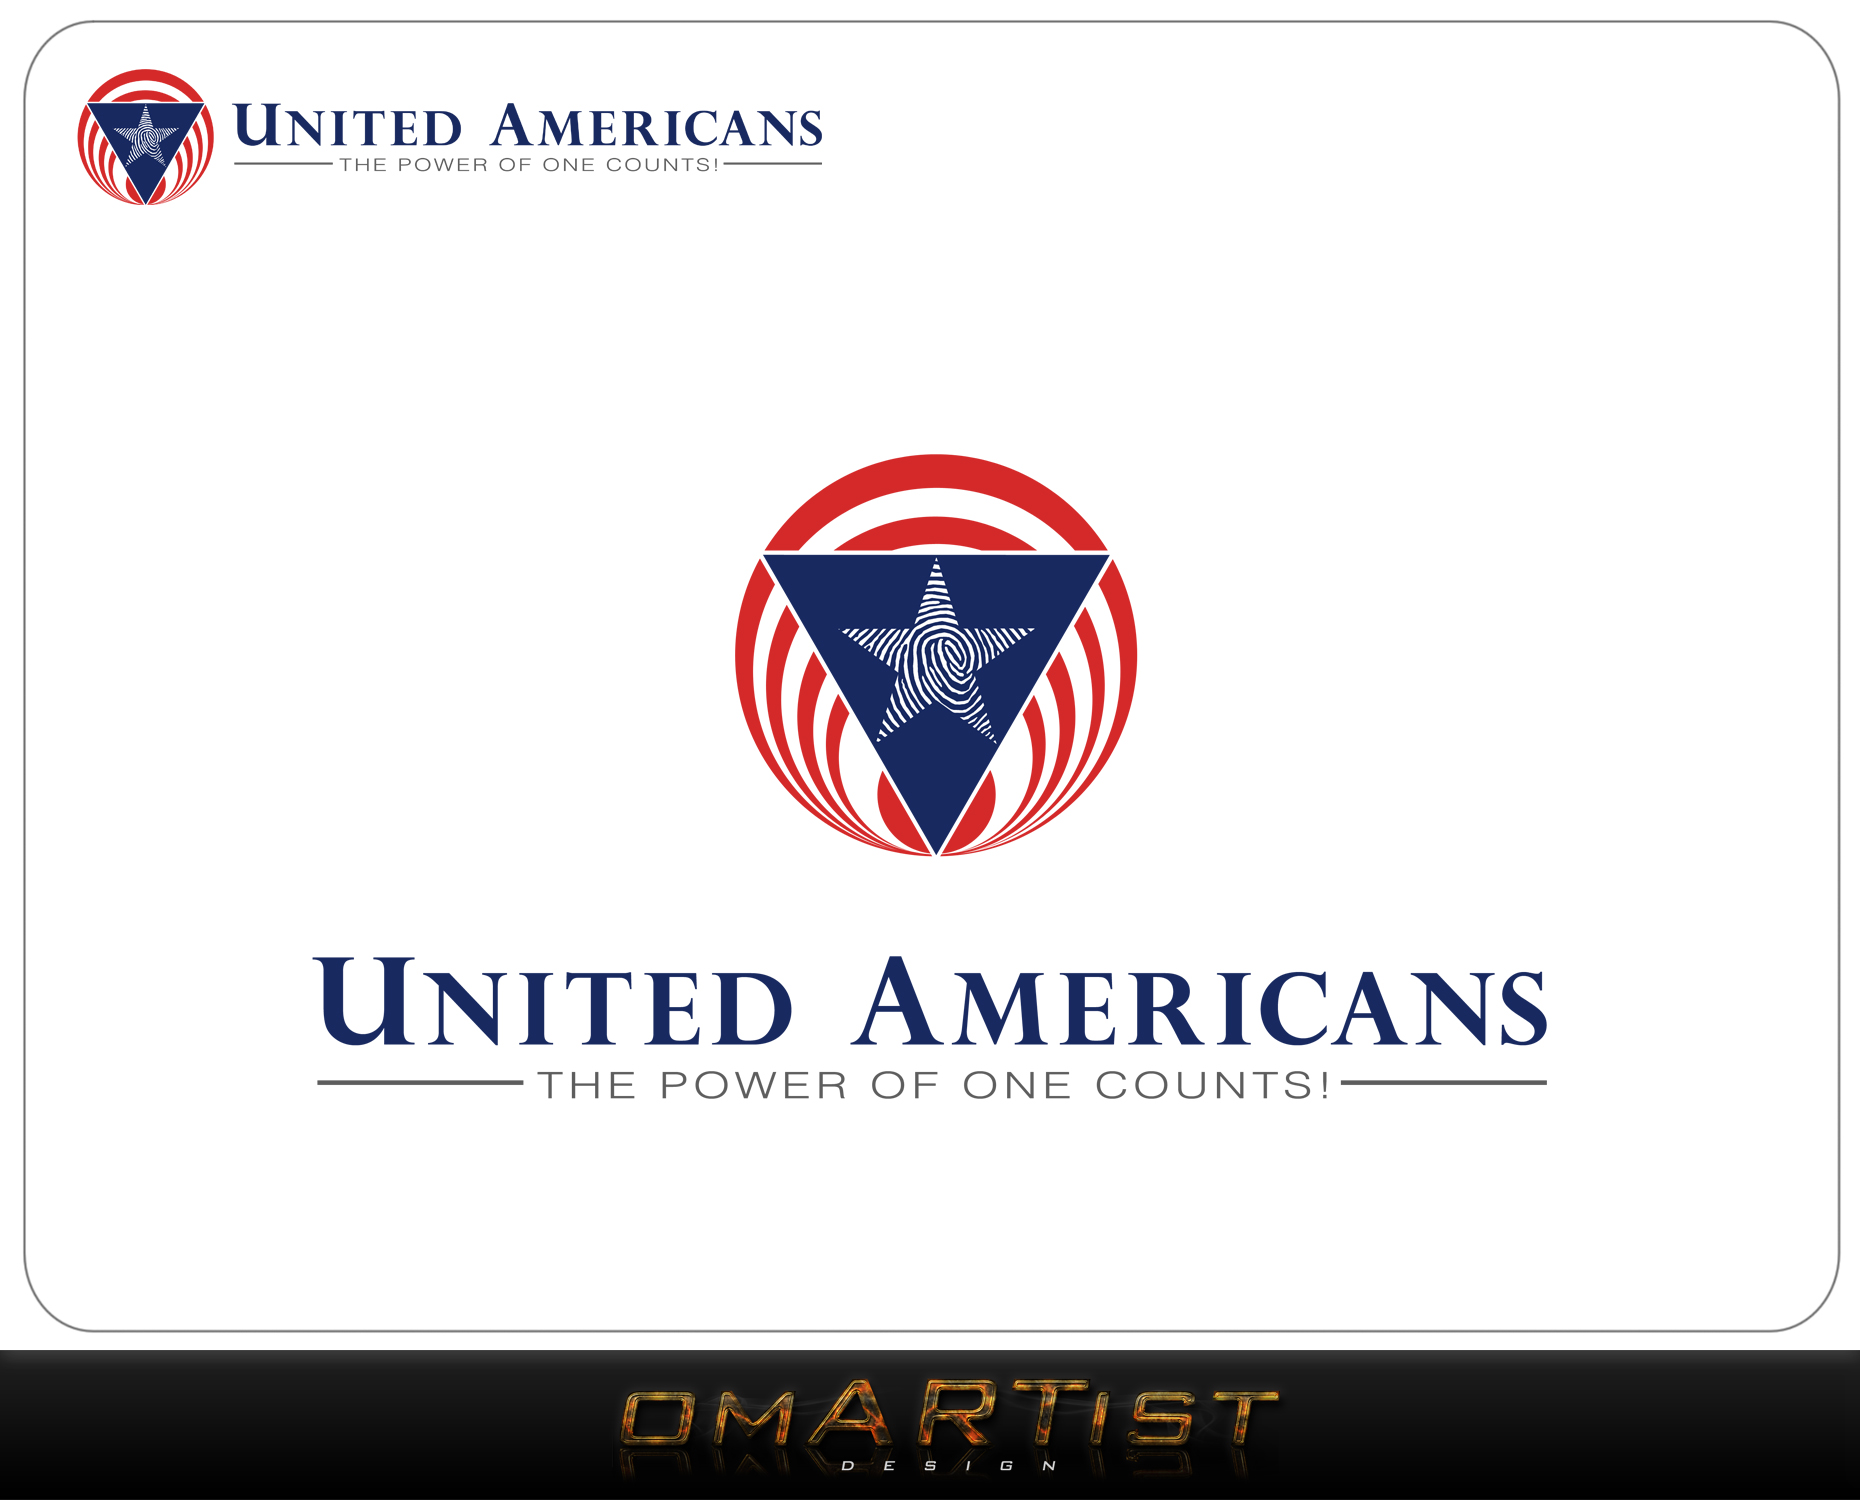 Logo Design by omARTist - Entry No. 110 in the Logo Design Contest Creative Logo Design for United Americans.